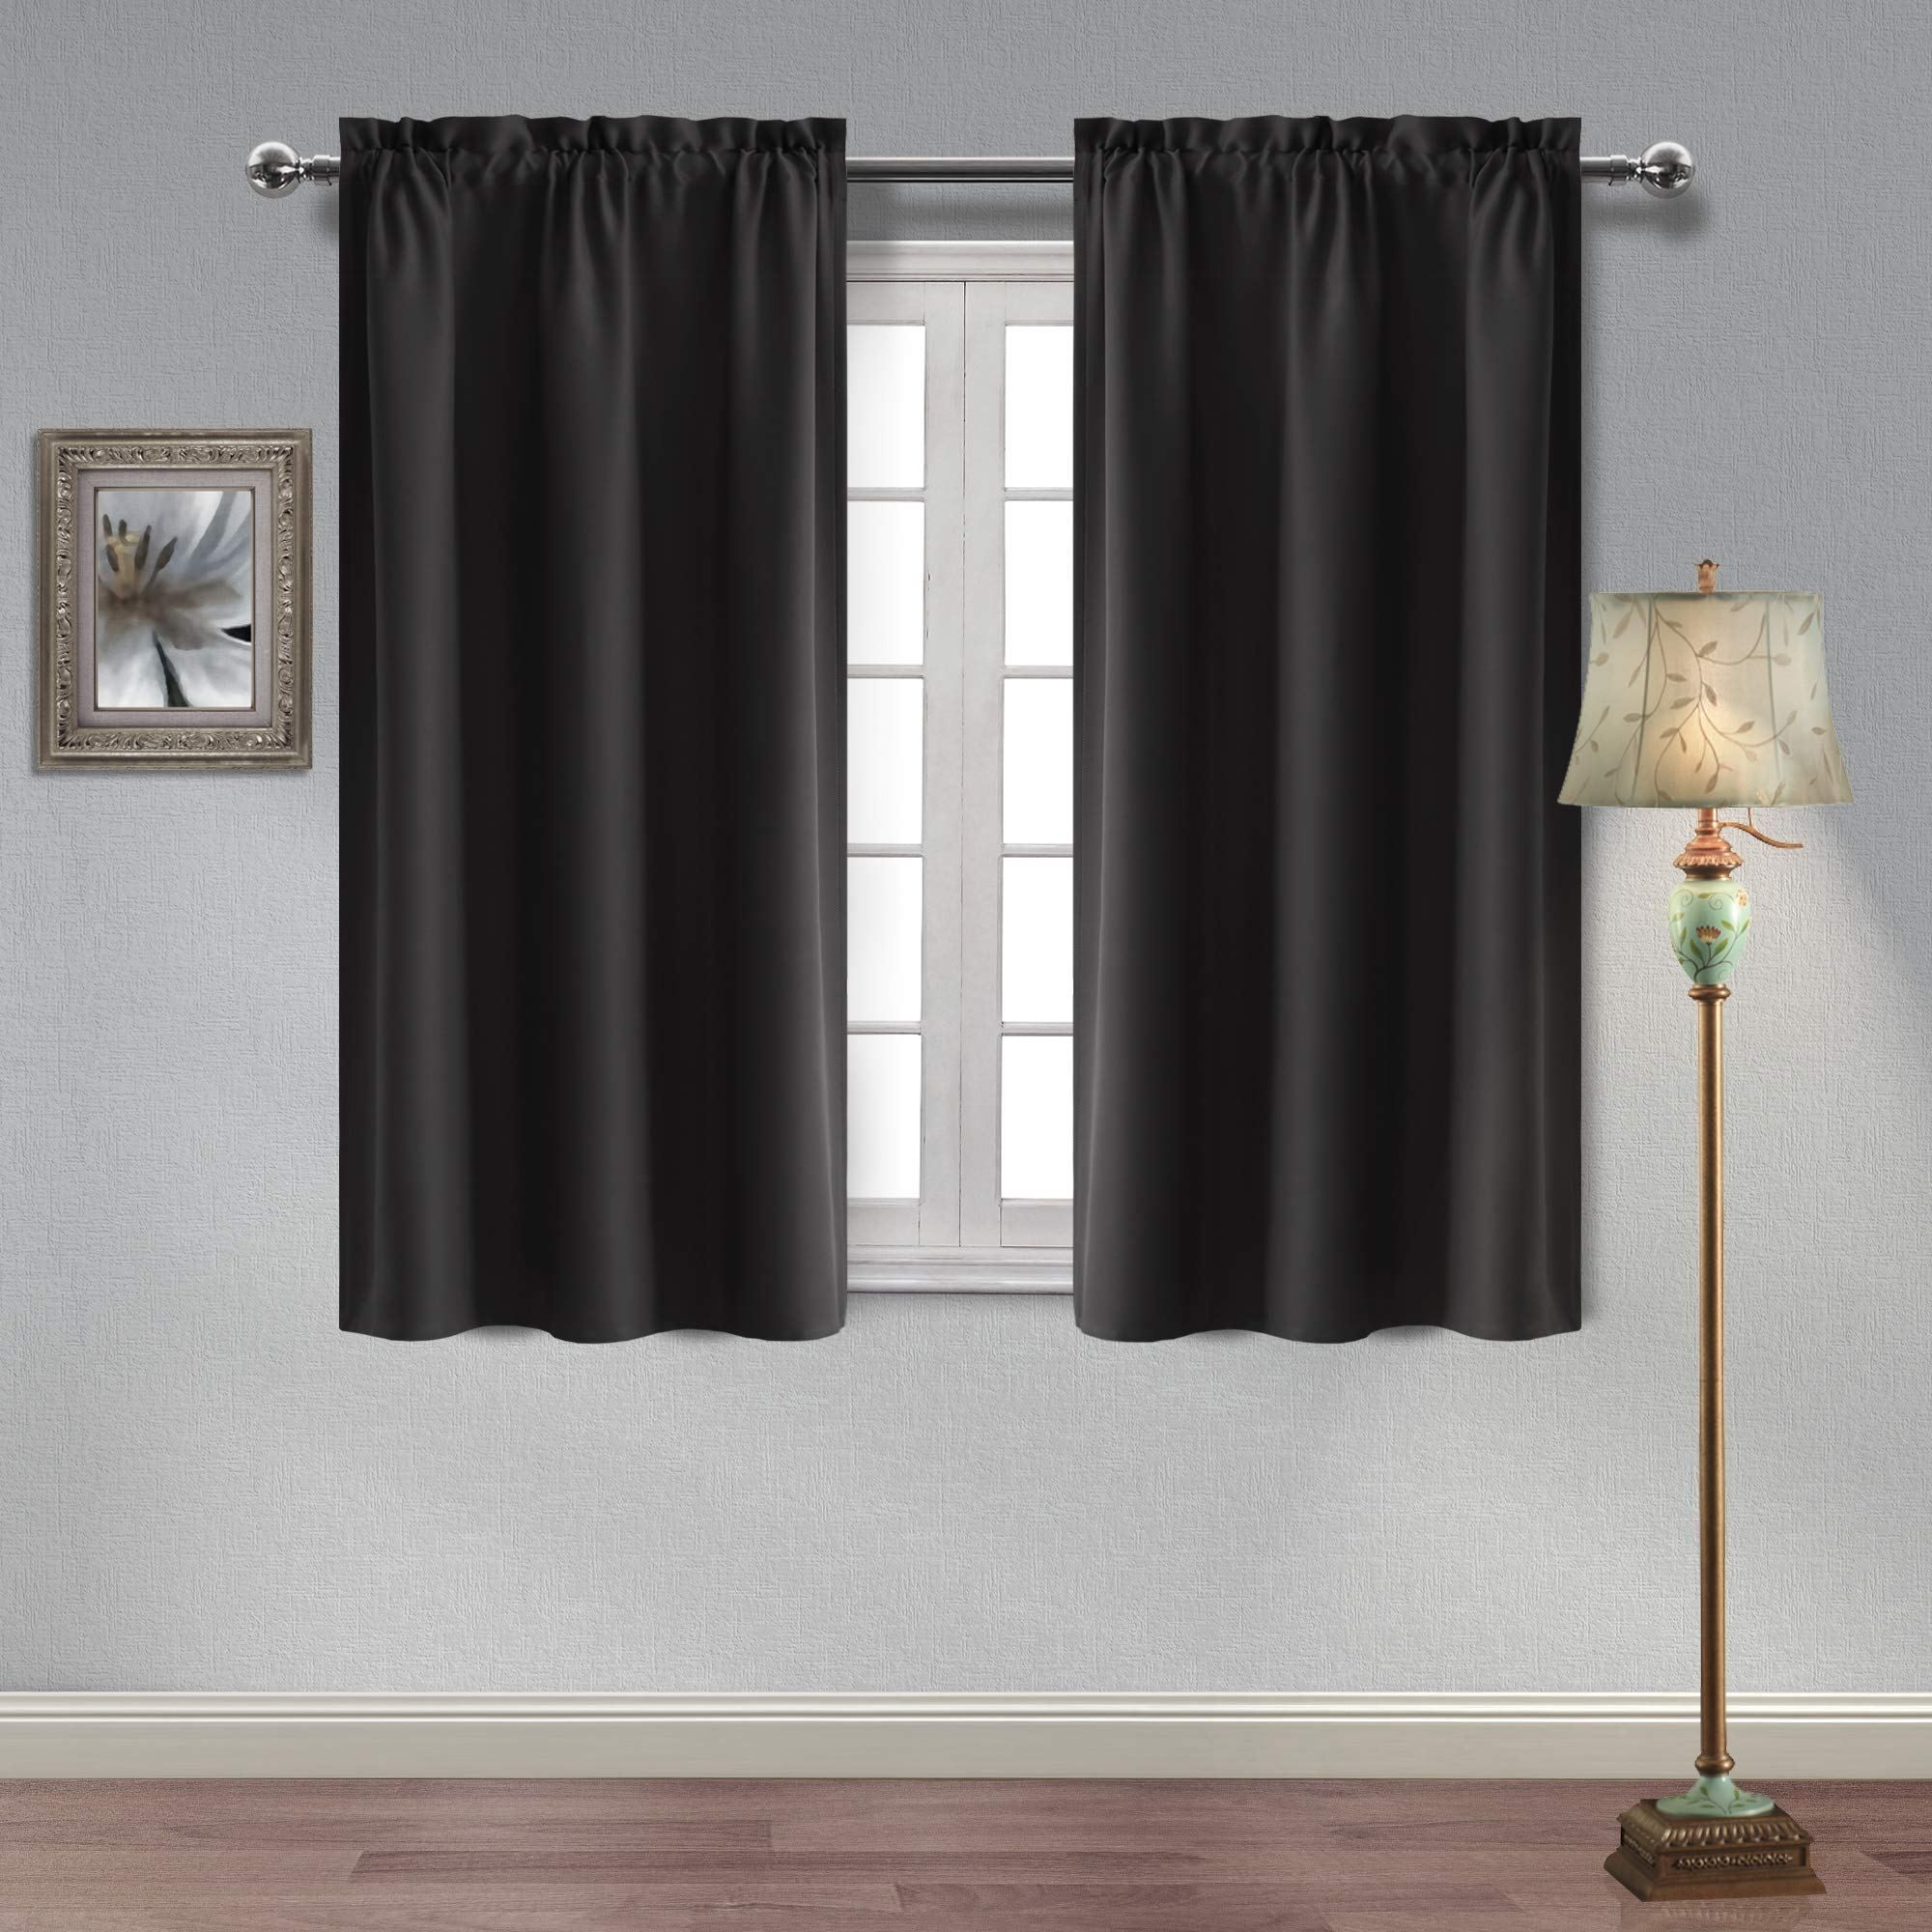 Thermal Insulated Blackout Curtains